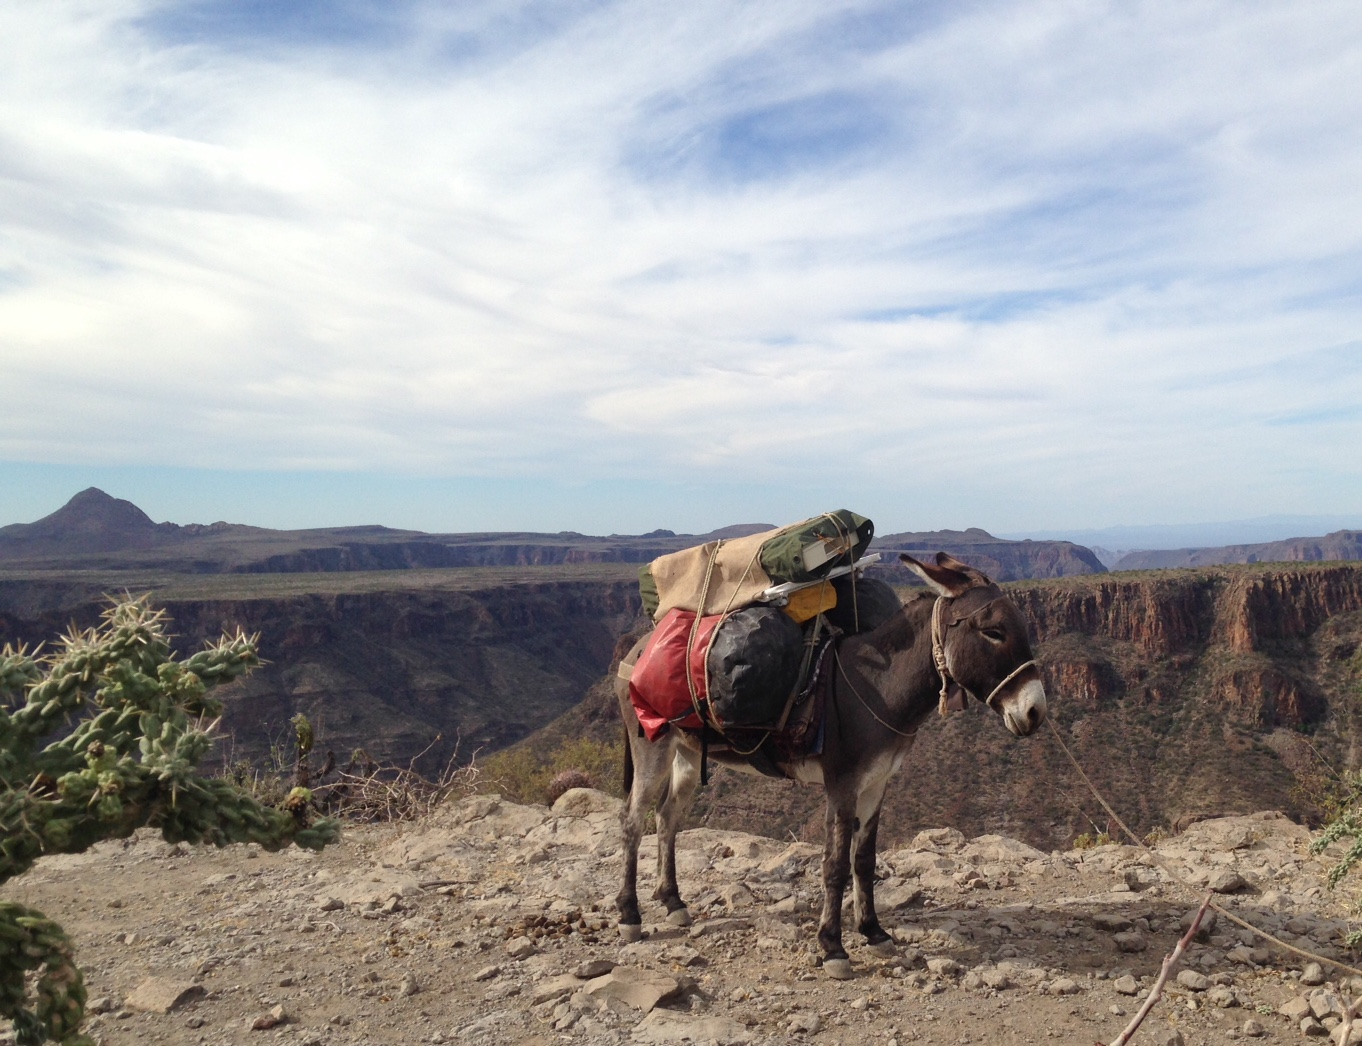 Donkeys carried our supplies down into the canyon